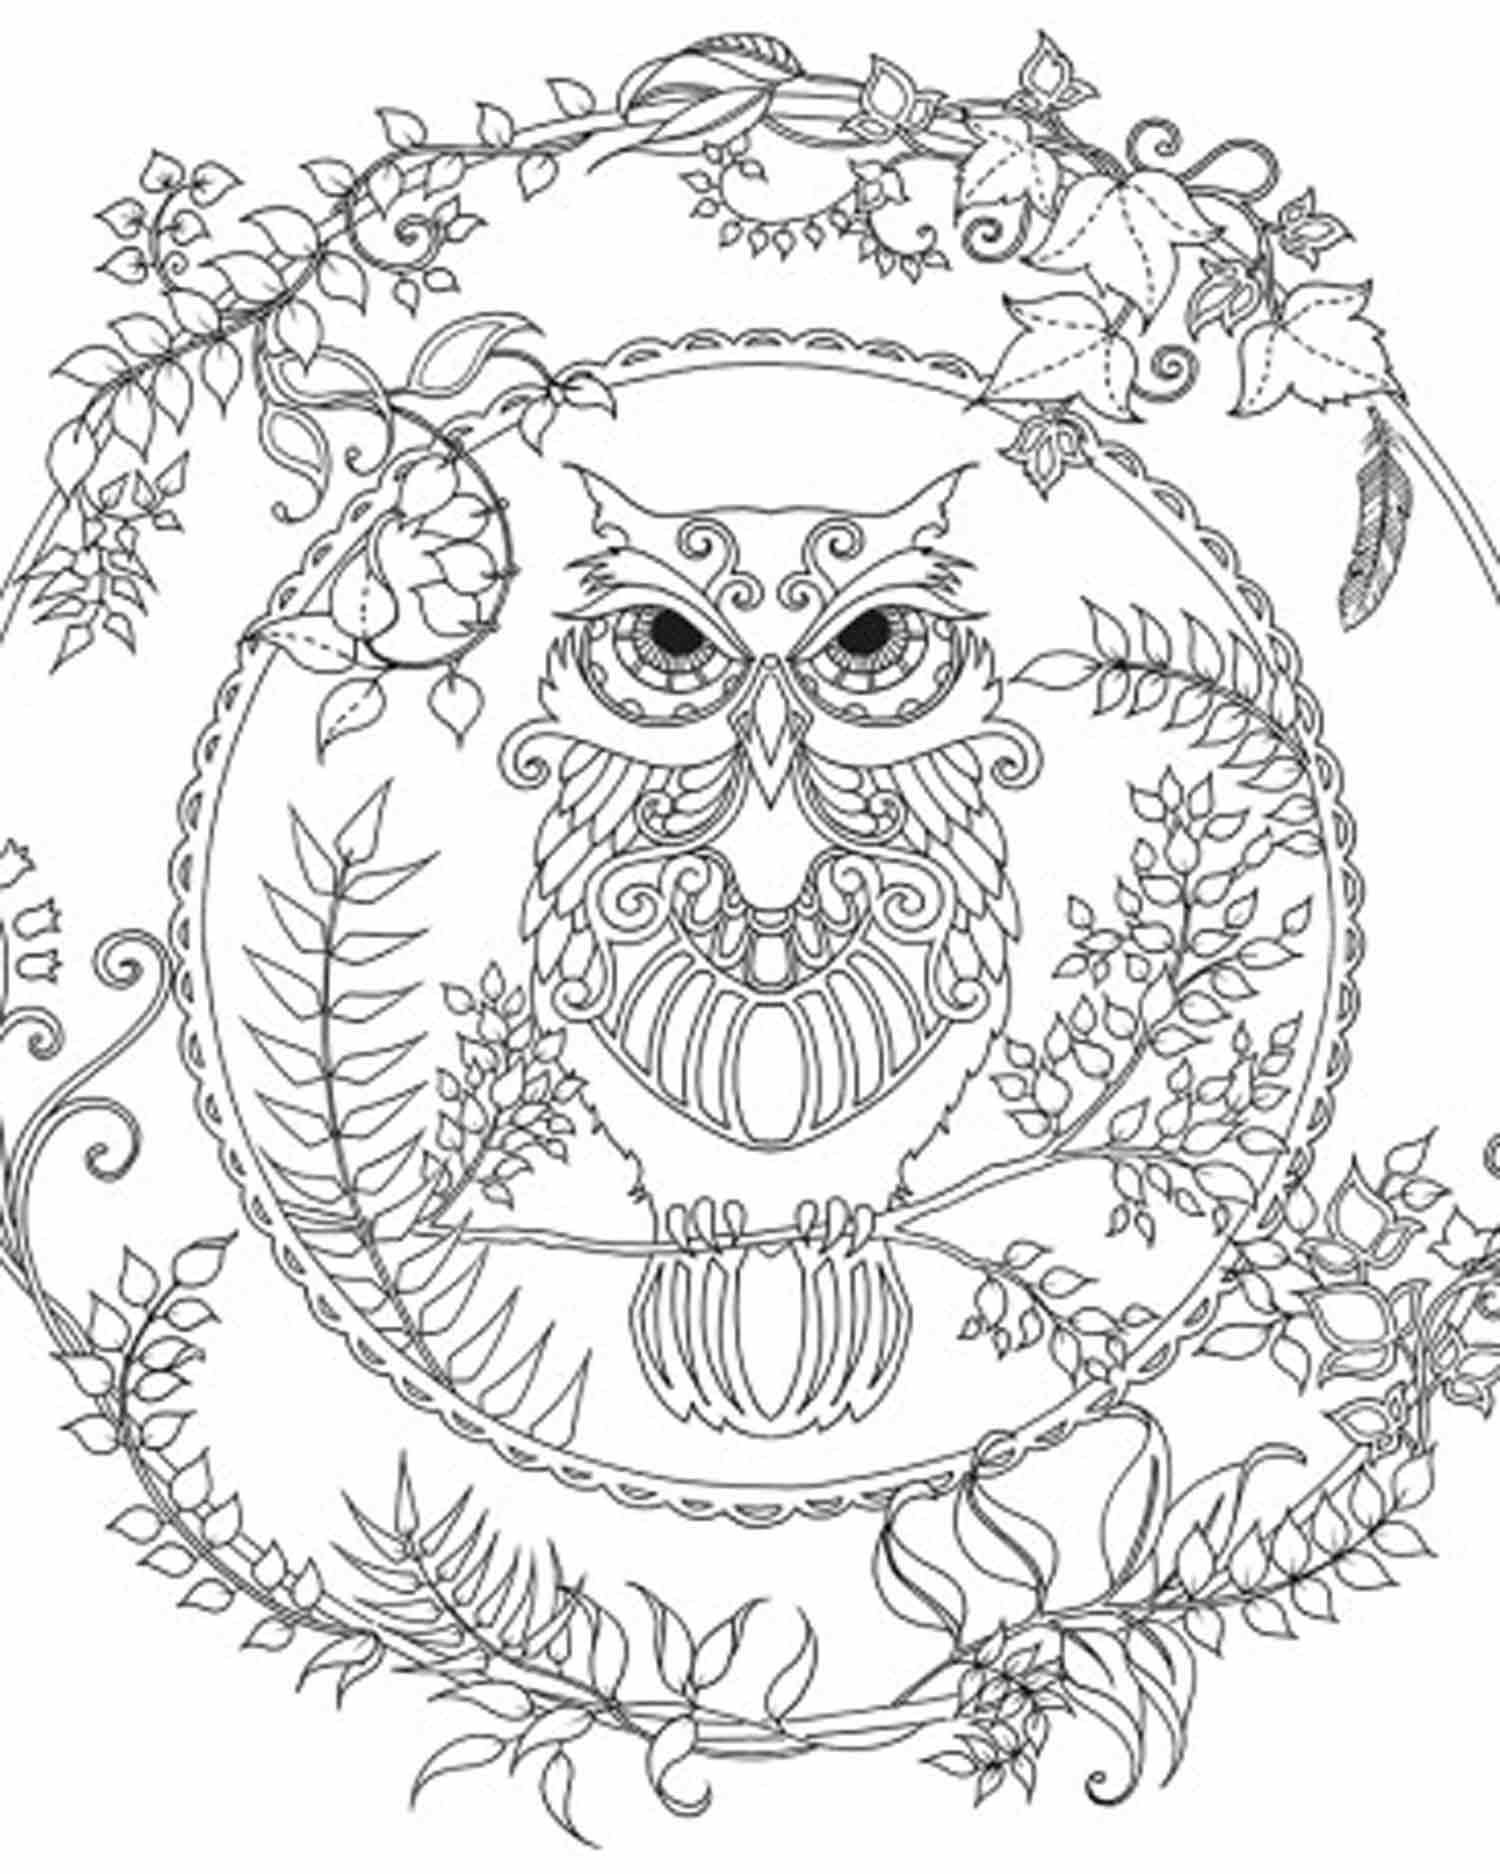 Colouring in book free - Brightbird Free Adult Coloring Pages